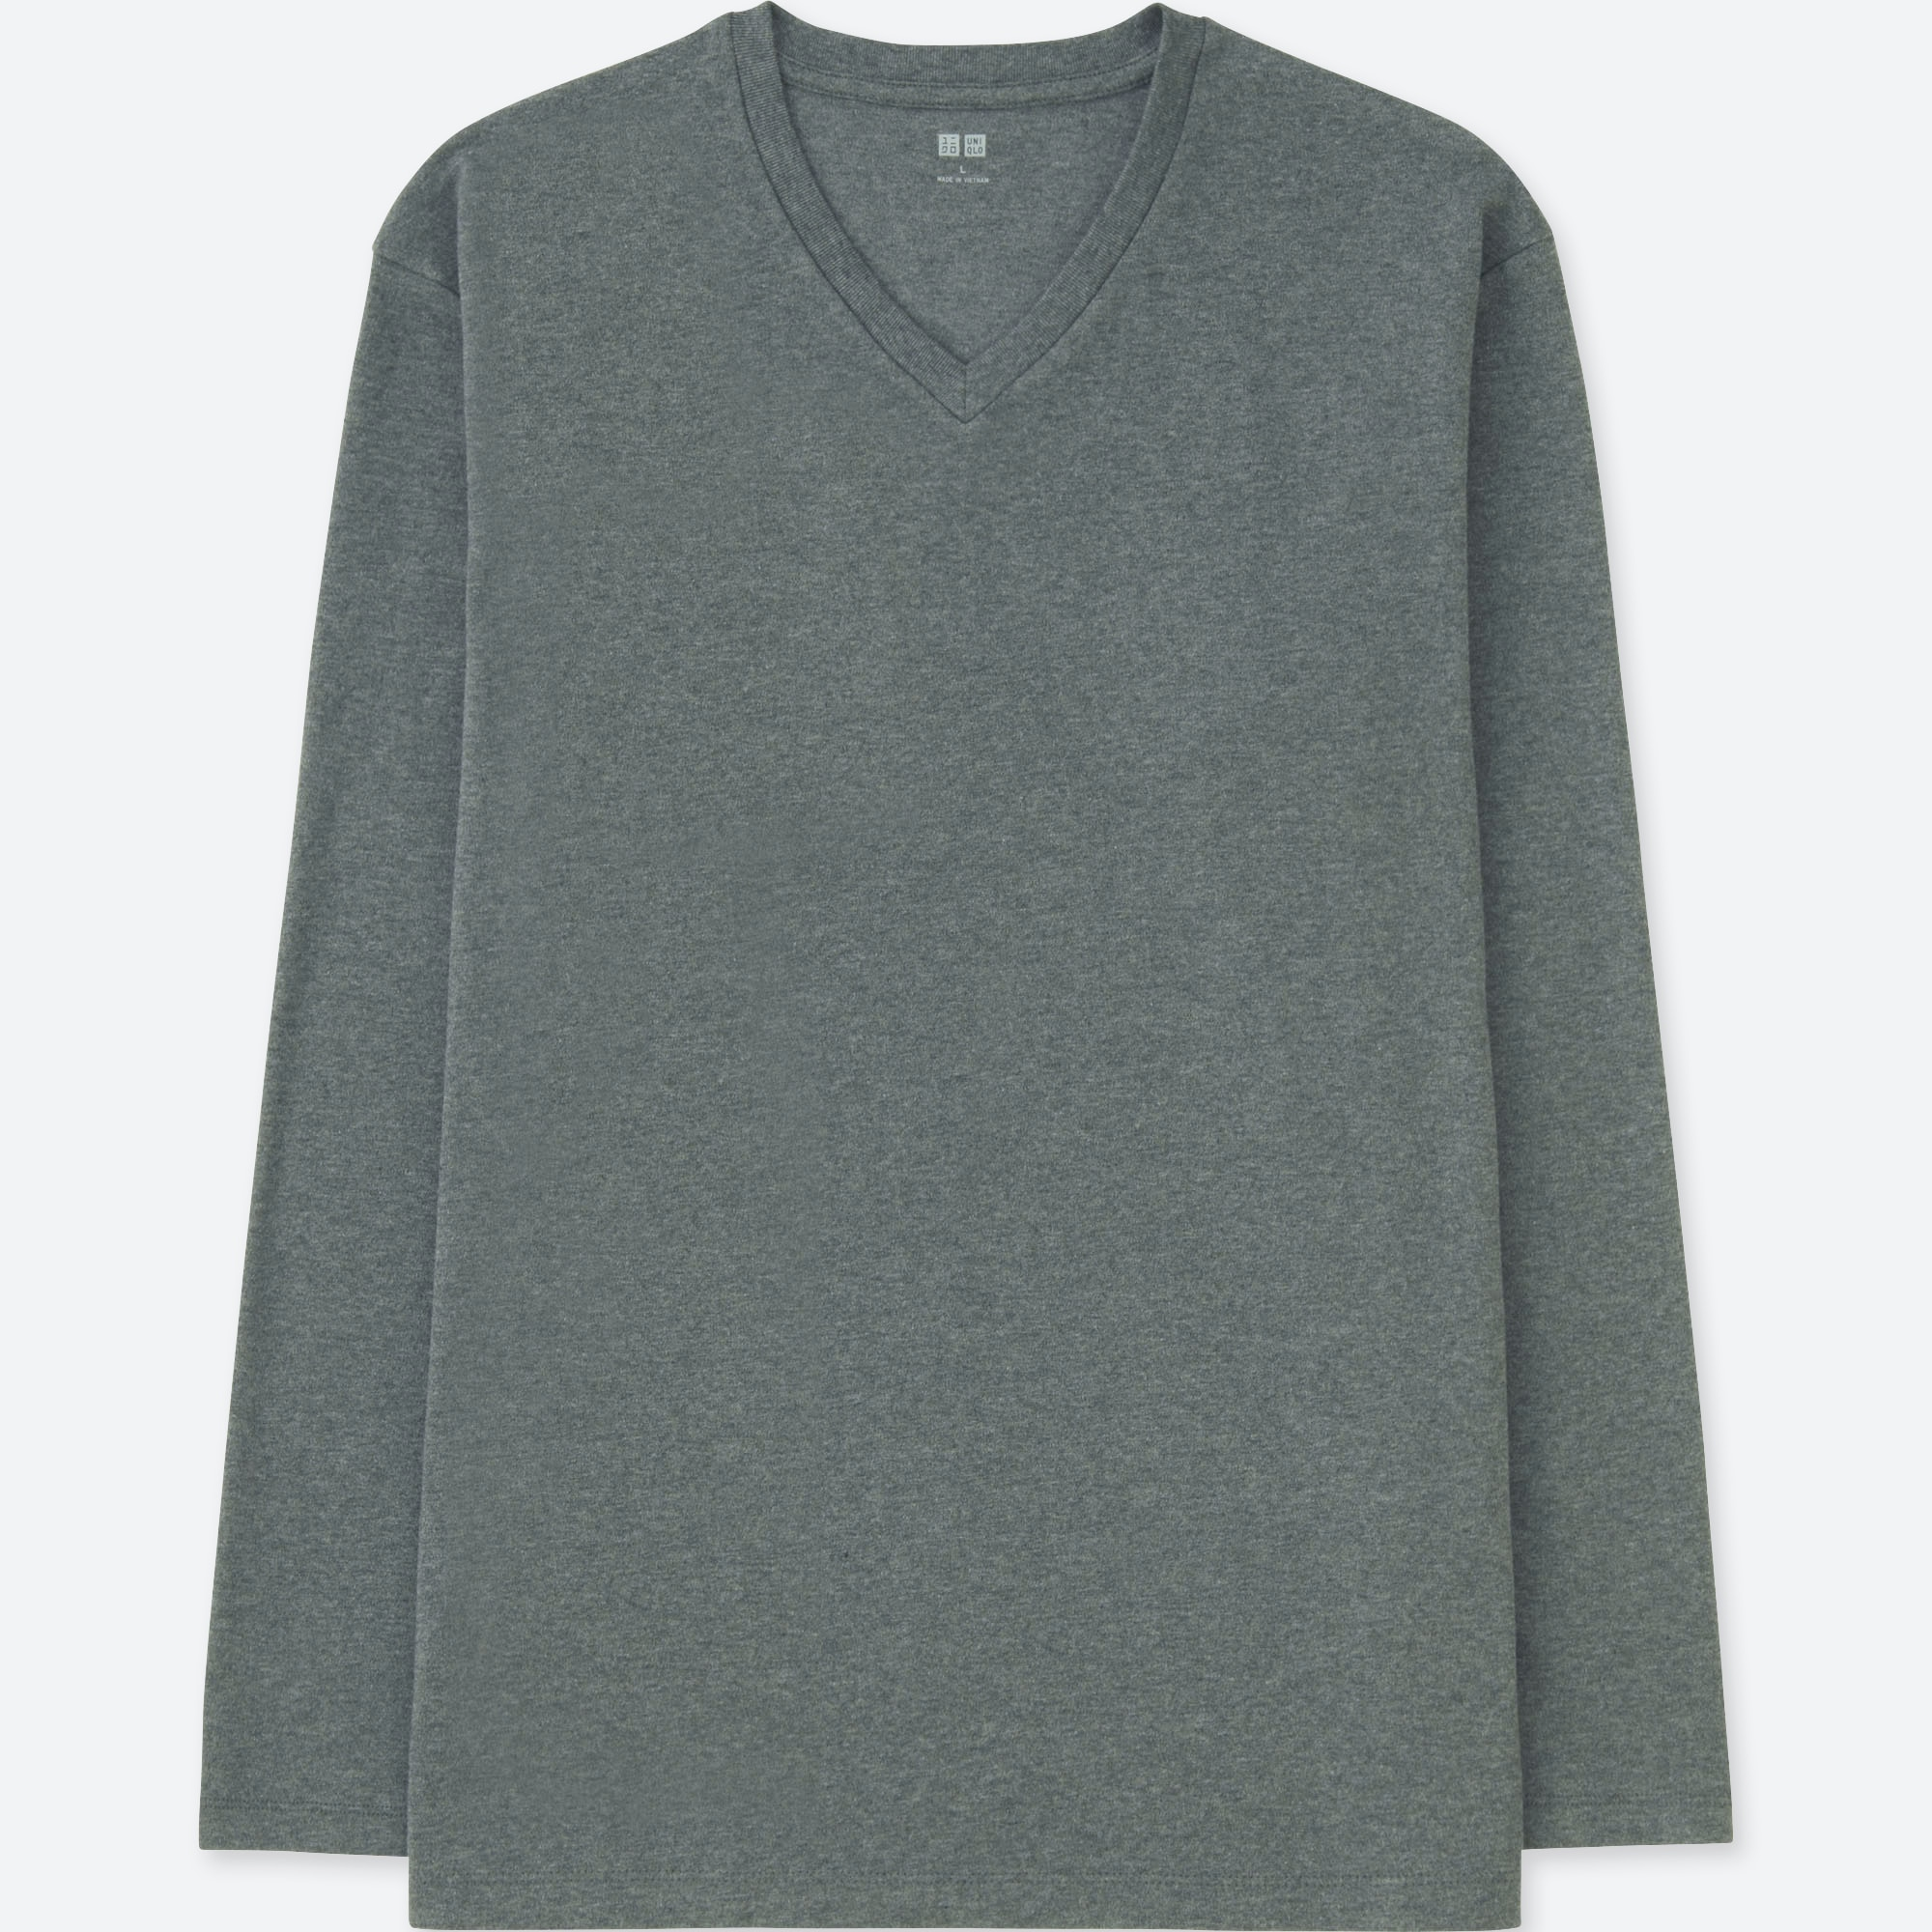 diversified in packaging amazing selection fine quality MEN SOFT TOUCH V-NECK LONG-SLEEVE T-SHIRT